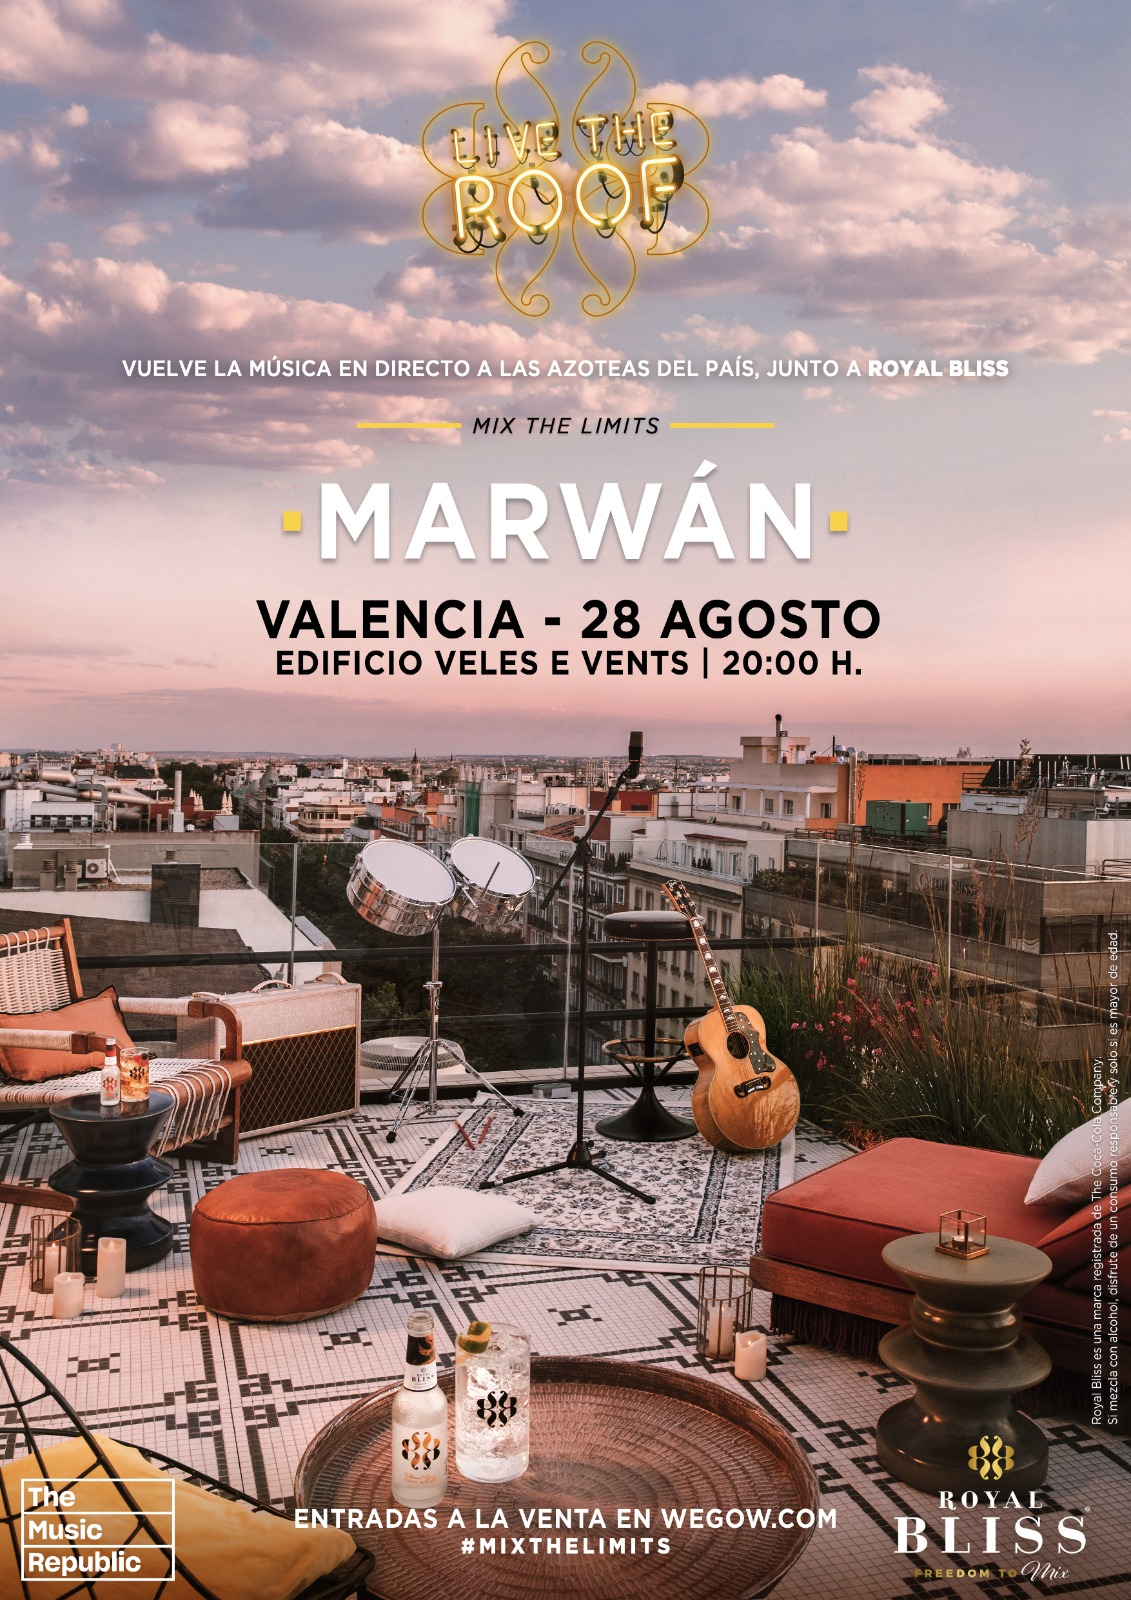 marwan live the roof valencia 1625556657480123